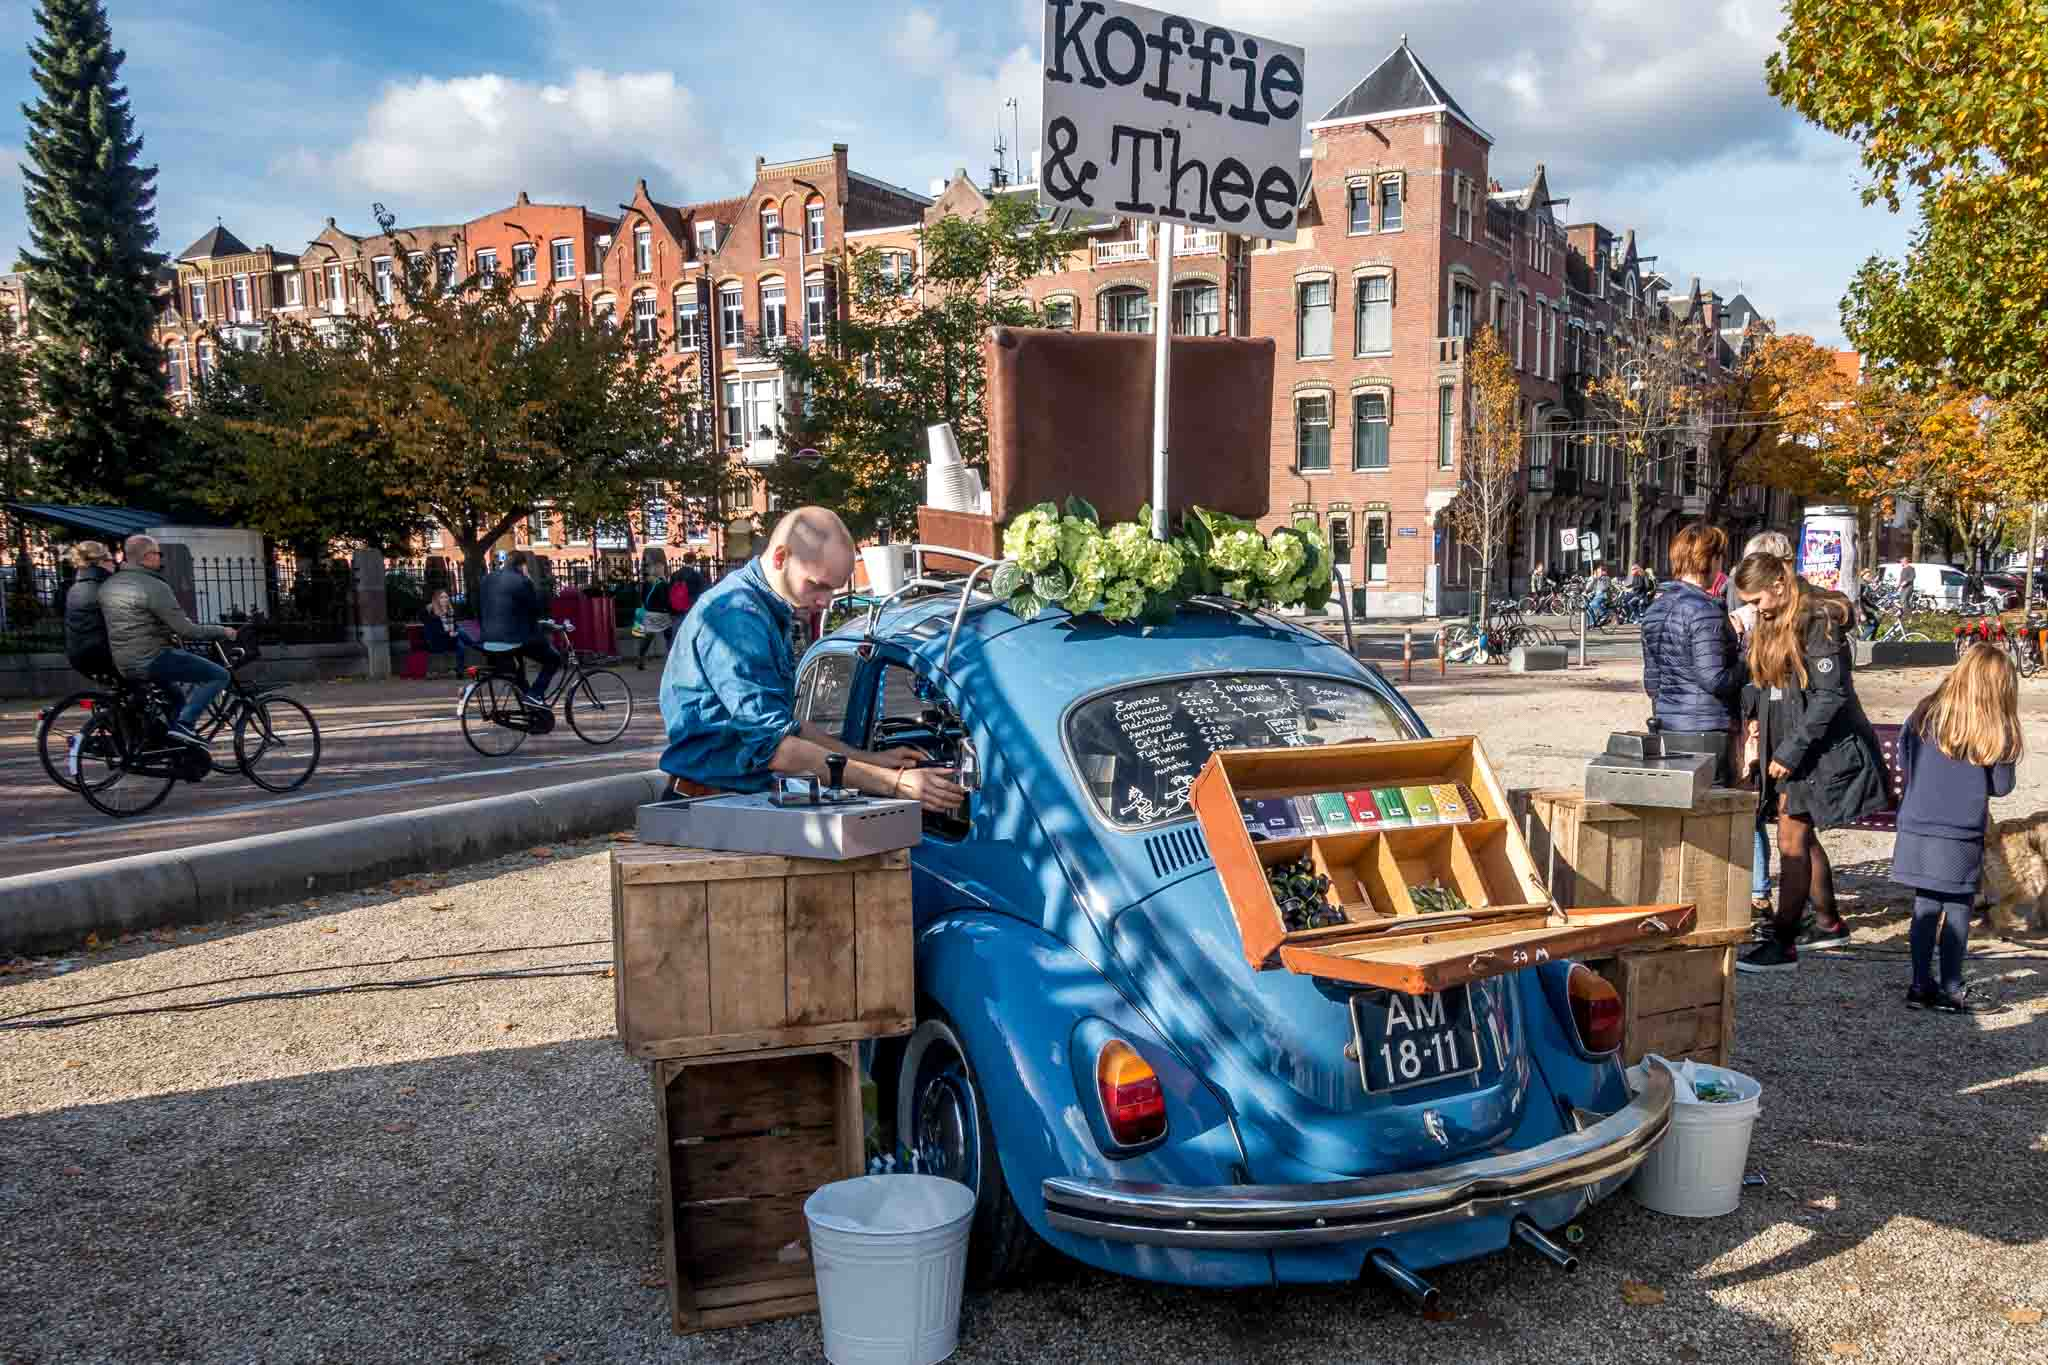 VW bug serving coffee at the Museum market, an Amsterdam must see